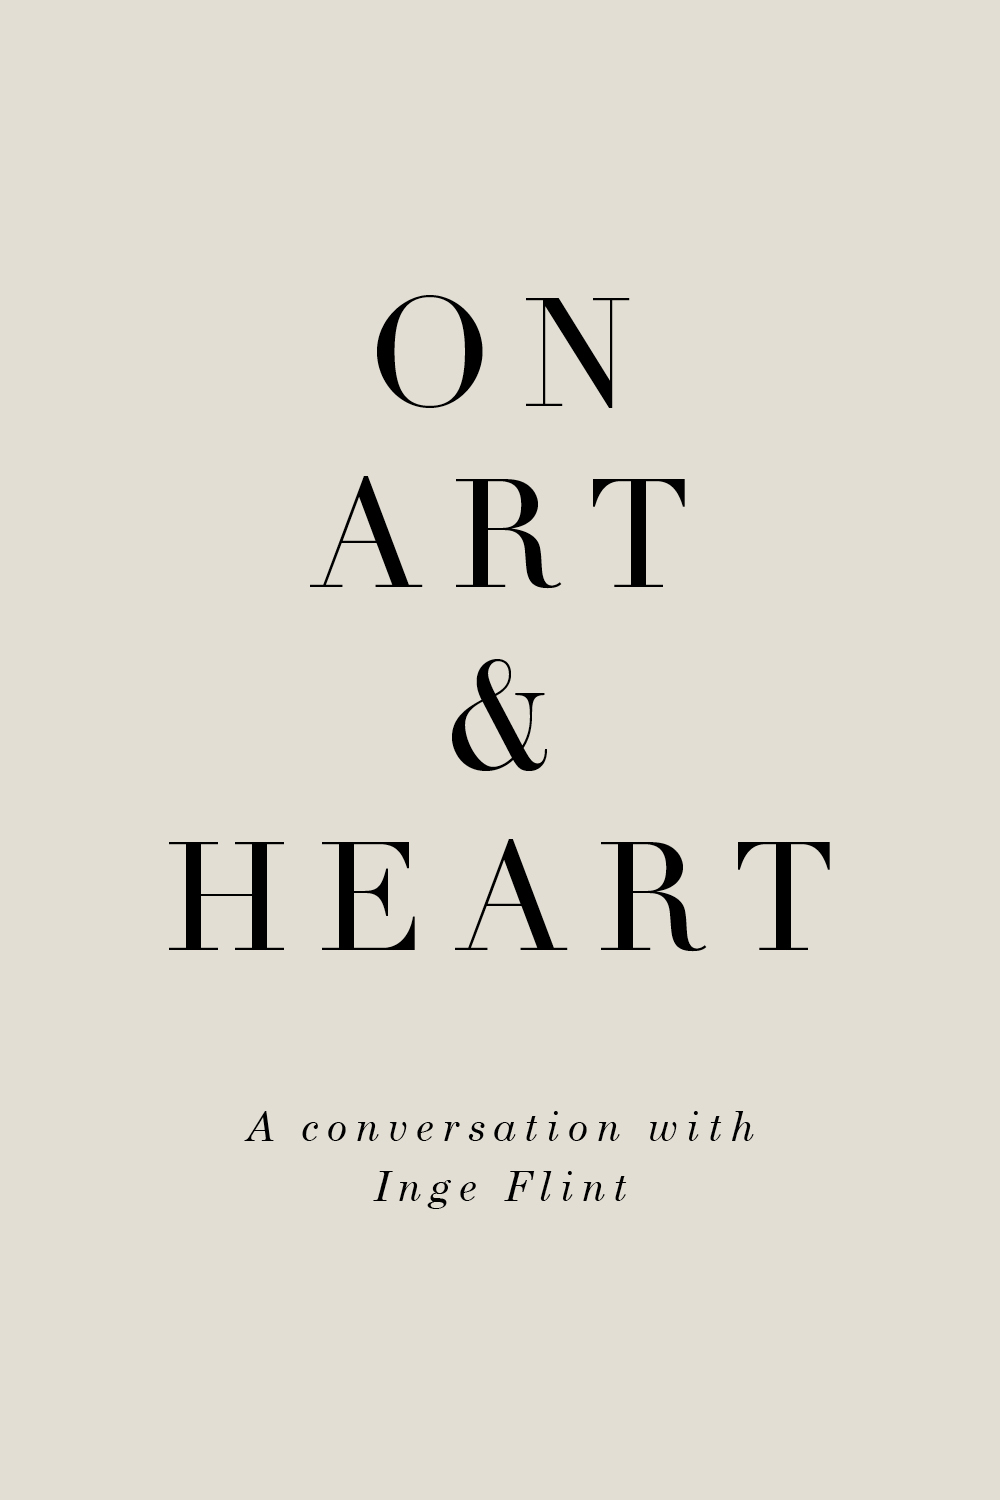 On Art & Heart—Inge Flint (A series of conversations edited by Rhonda.H.Y.Mason)